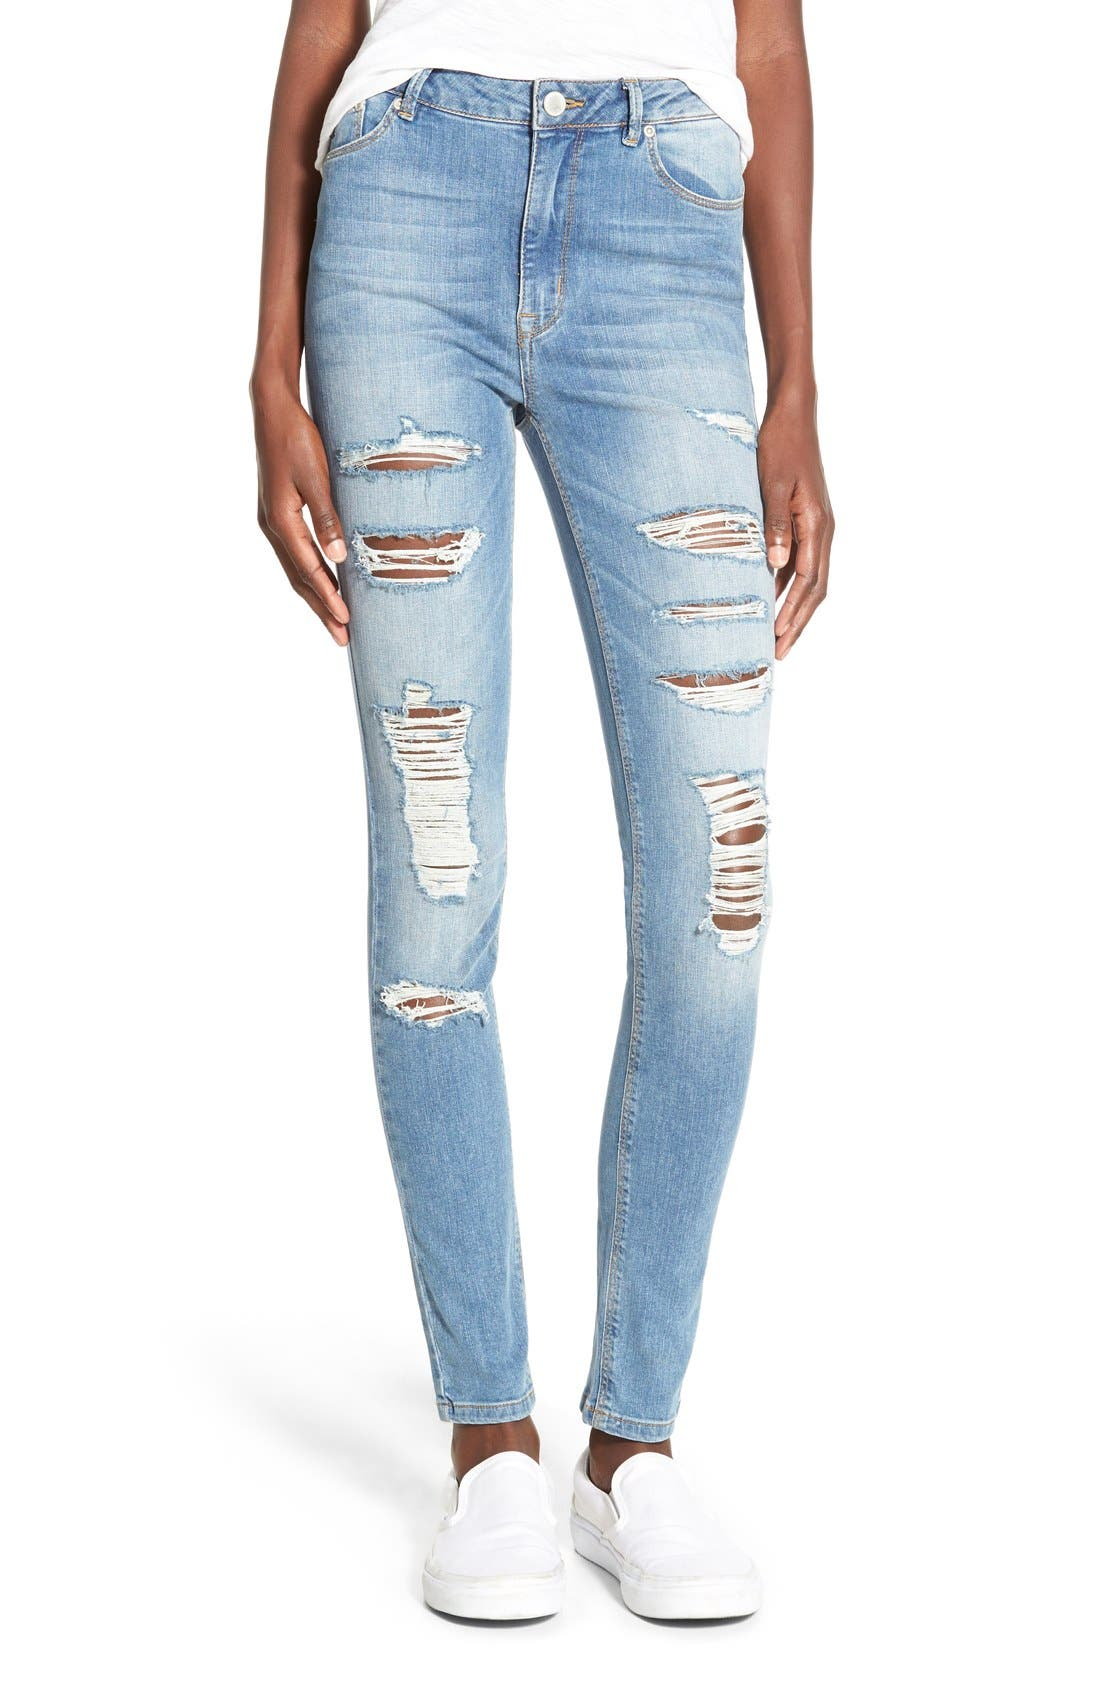 Alternate Image 1 Selected - RES Denim Distressed High Rise Skinny Jeans (Arctic Destroyer)